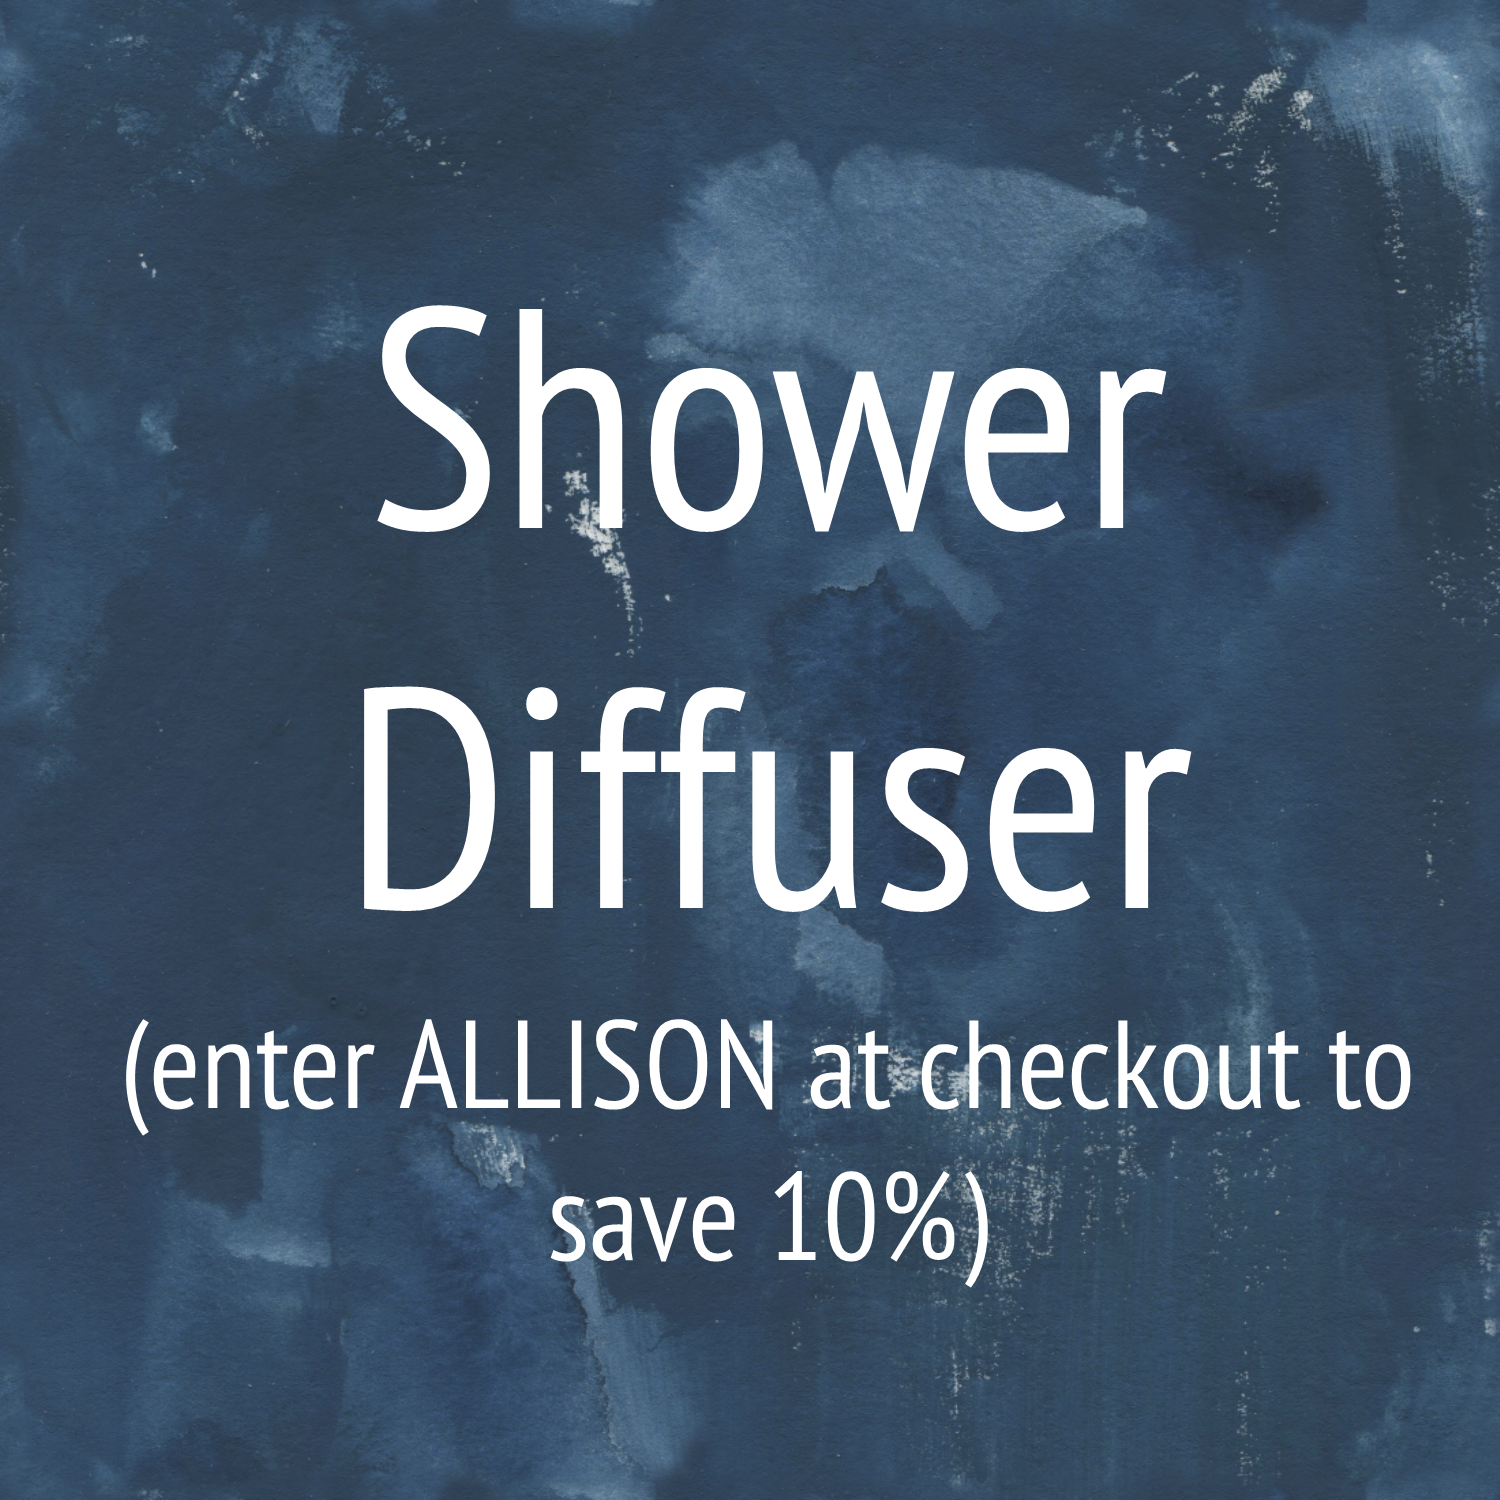 shower diffuser.png